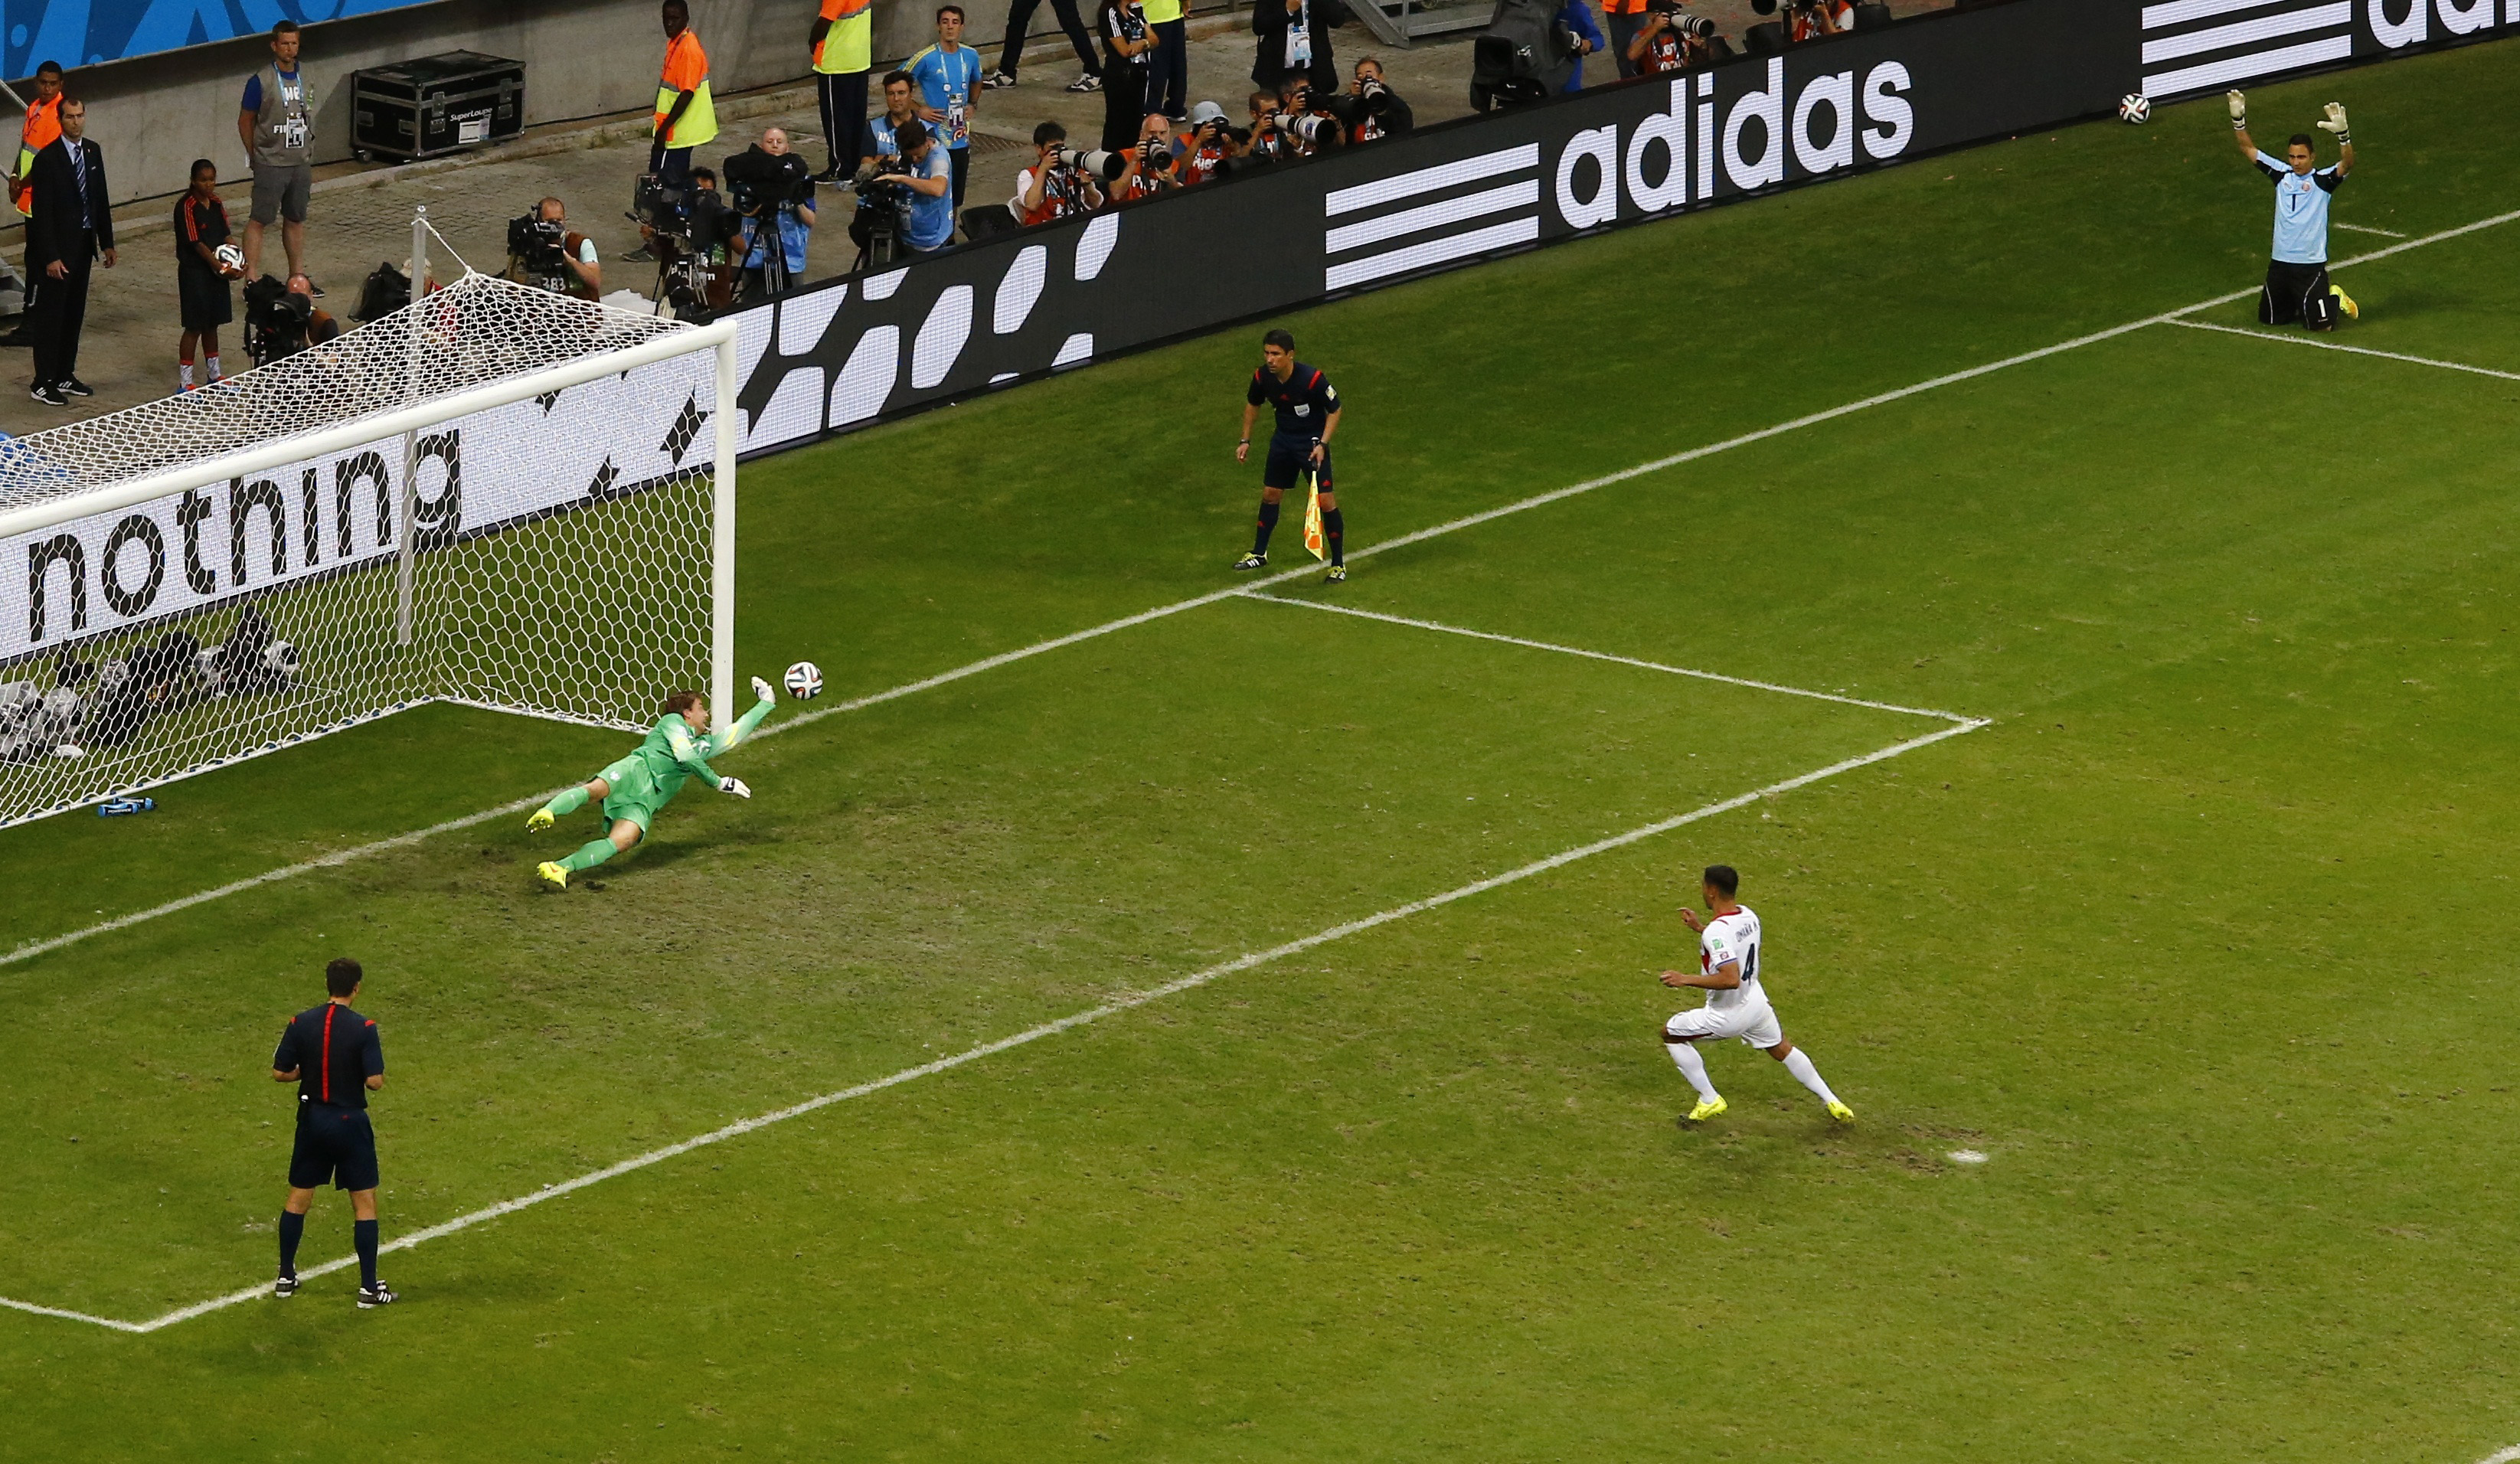 Substitute goalkeeper Tim Krul of the Netherlands makes a save on a shot at goal by Costa Rica's Michael Umana (R) during a penalty shootout in their 2014 World Cup quarter-finals at the Fonte Nova arena in Salvador, Brazil,  July 5, 2014.